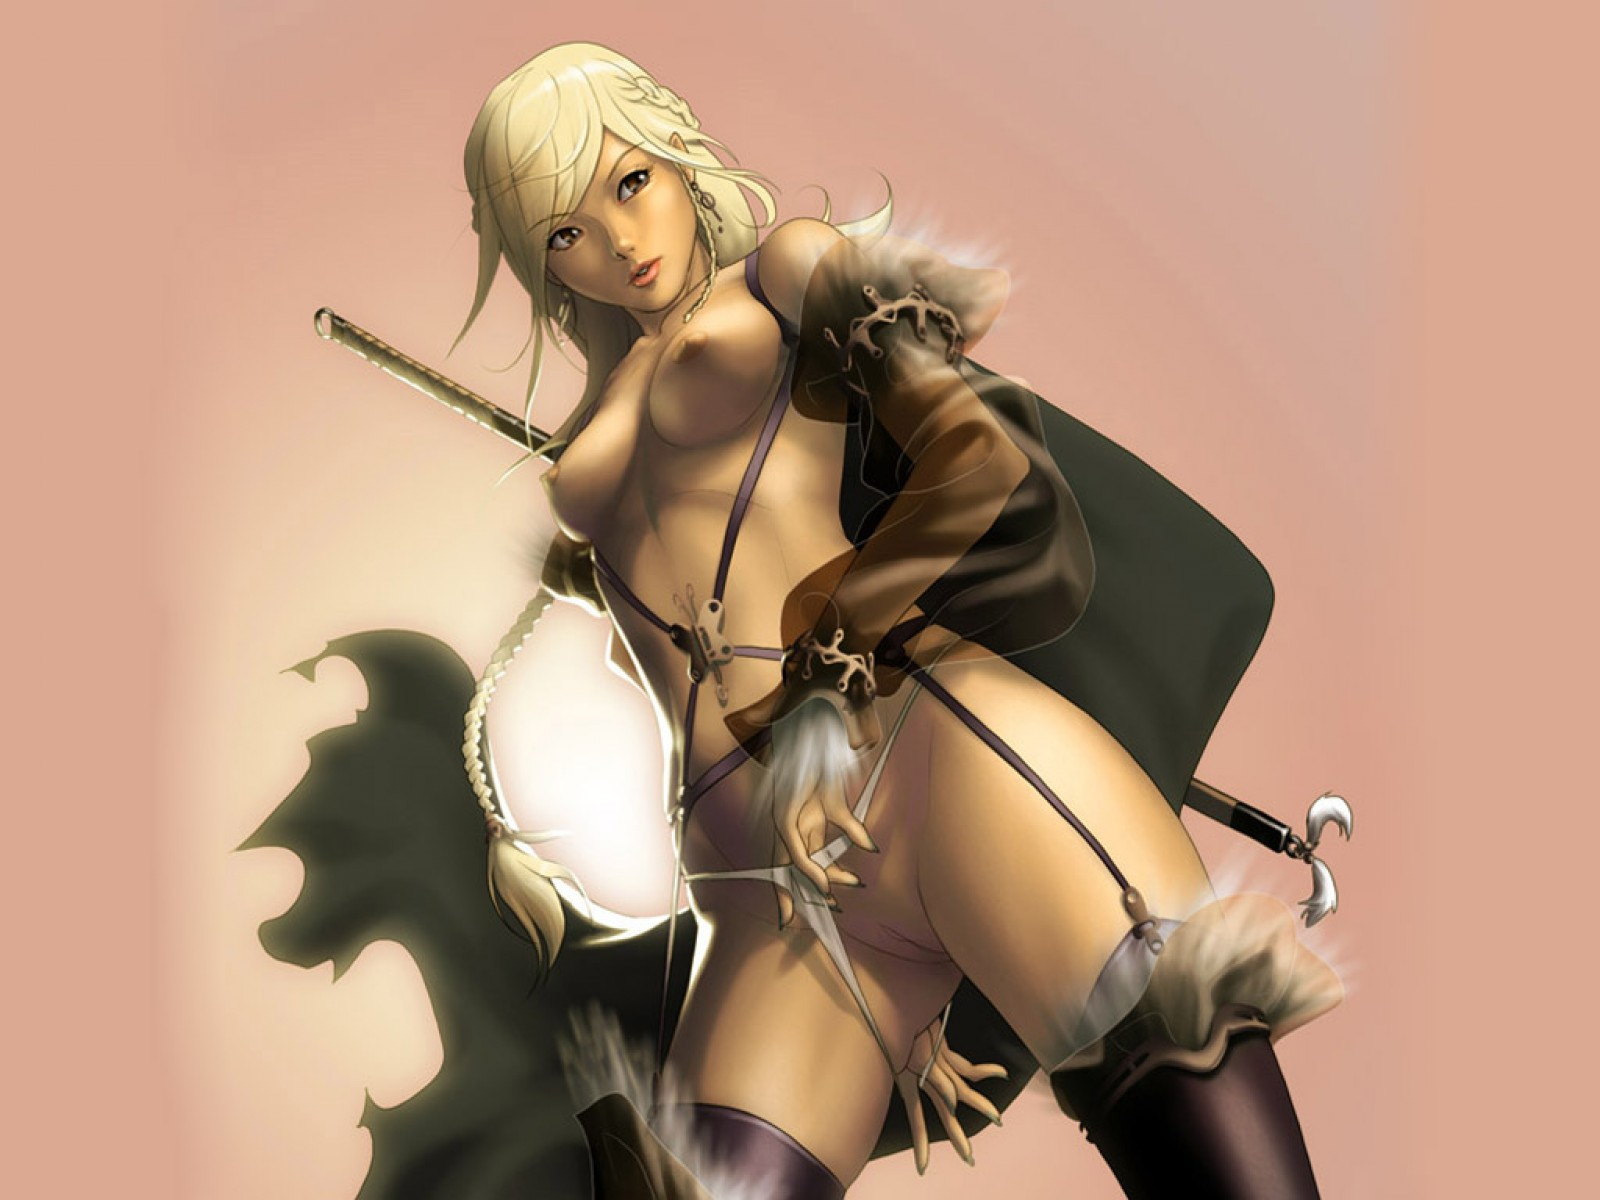 Erotic fantasy art anime nude videos